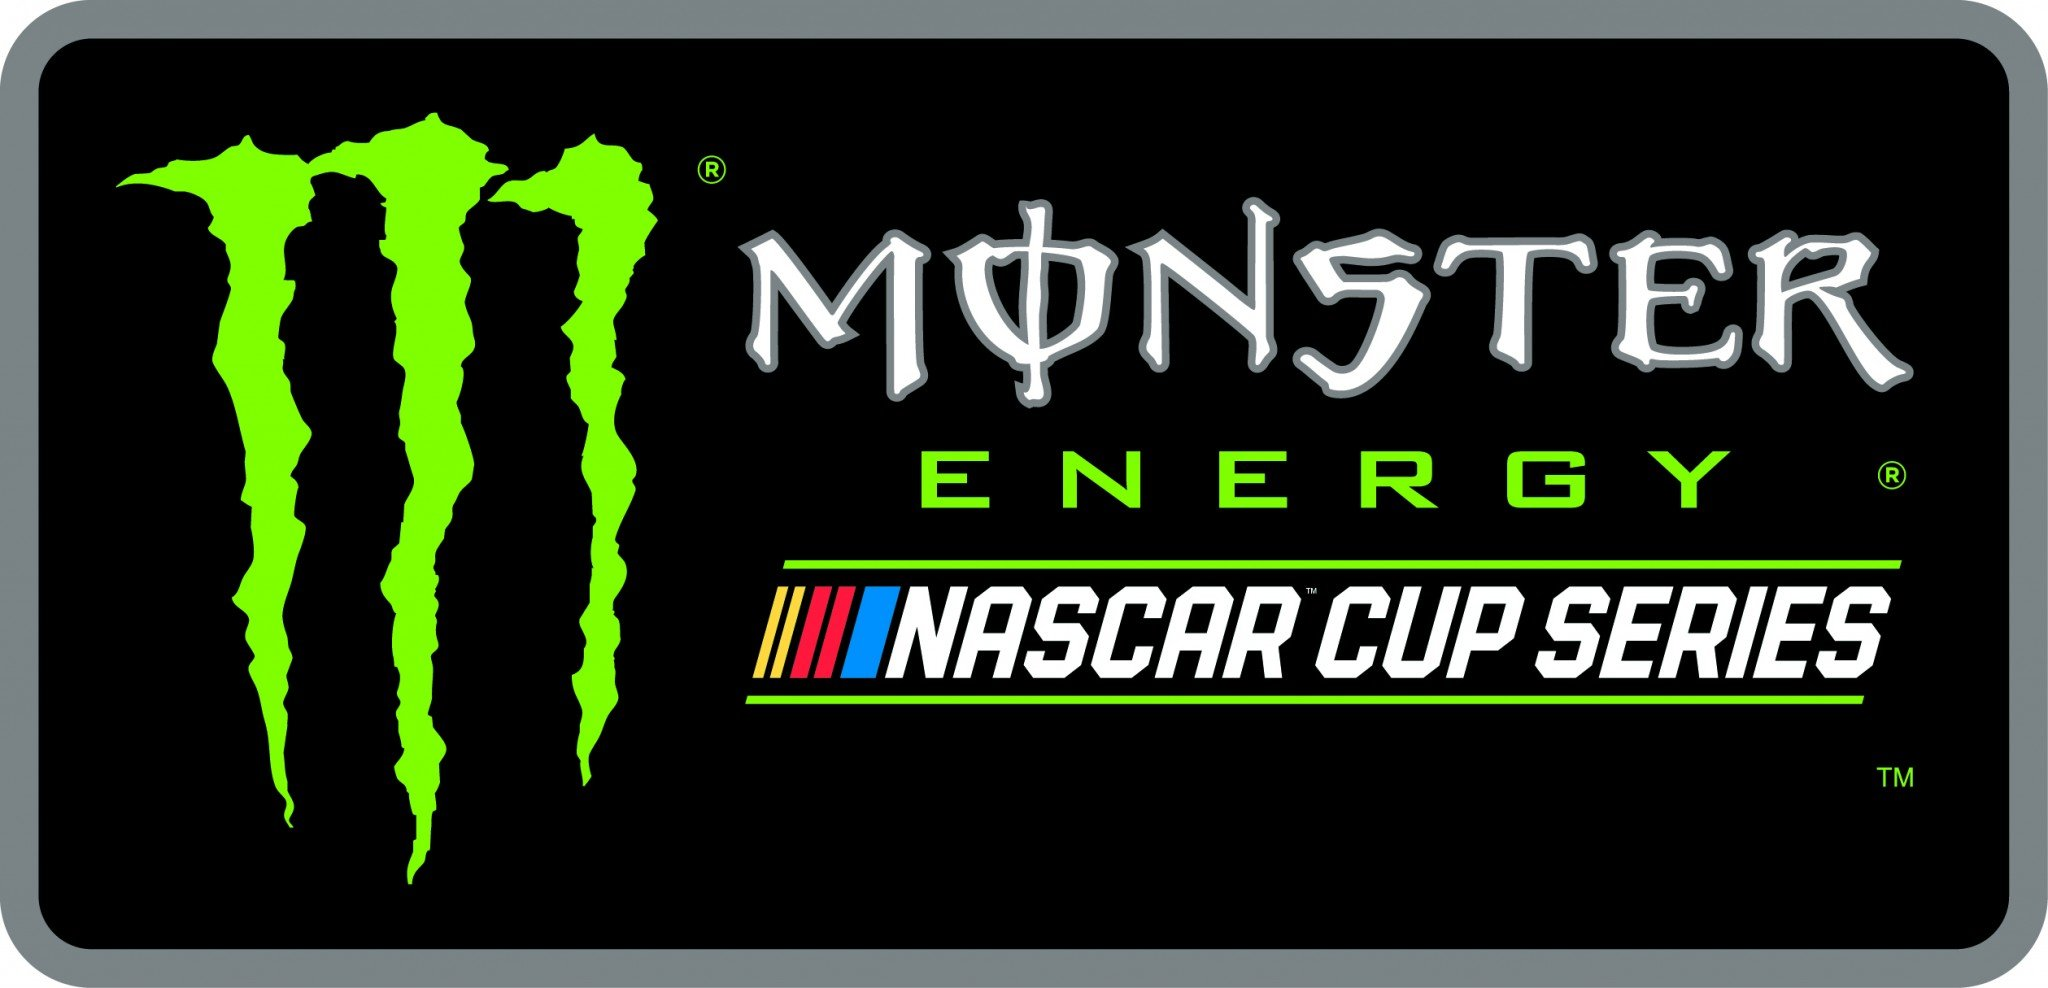 Here's the new NASCAR logo and official Cup Series name.